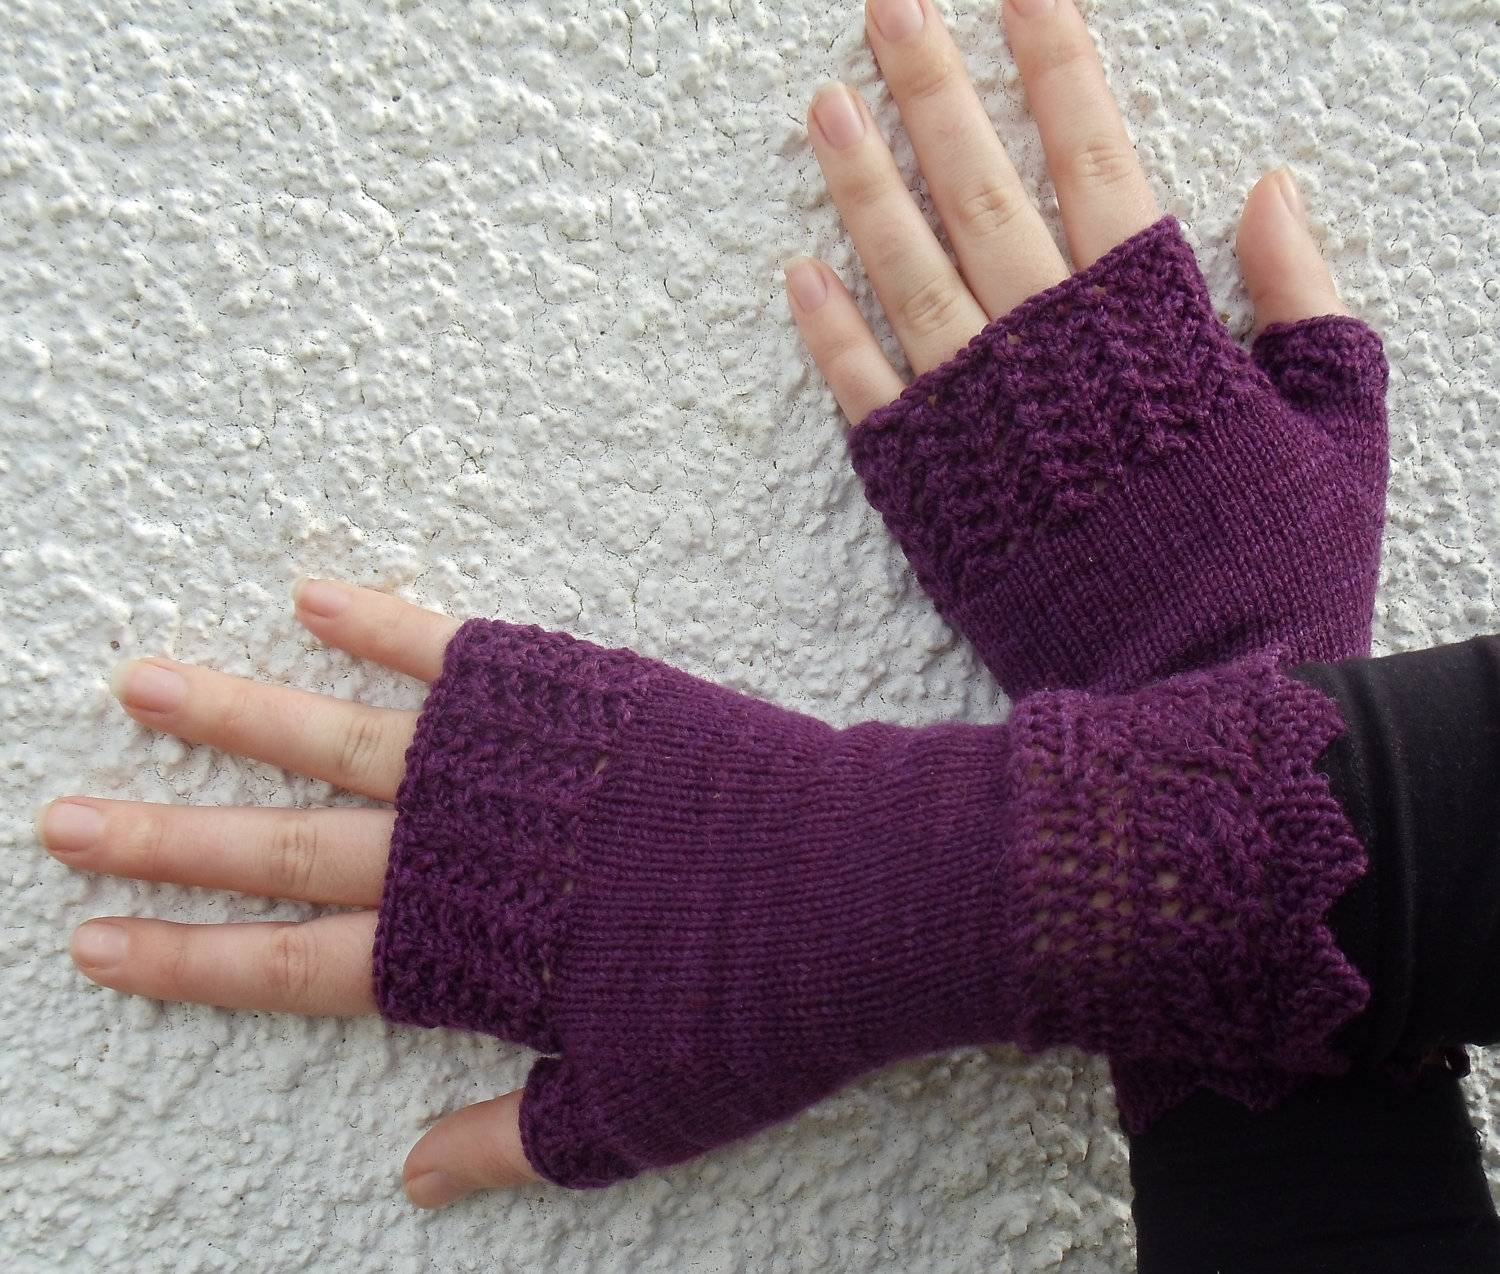 Knitting Mitten Pattern : Mitten Knitting Patterns A Knitting Blog